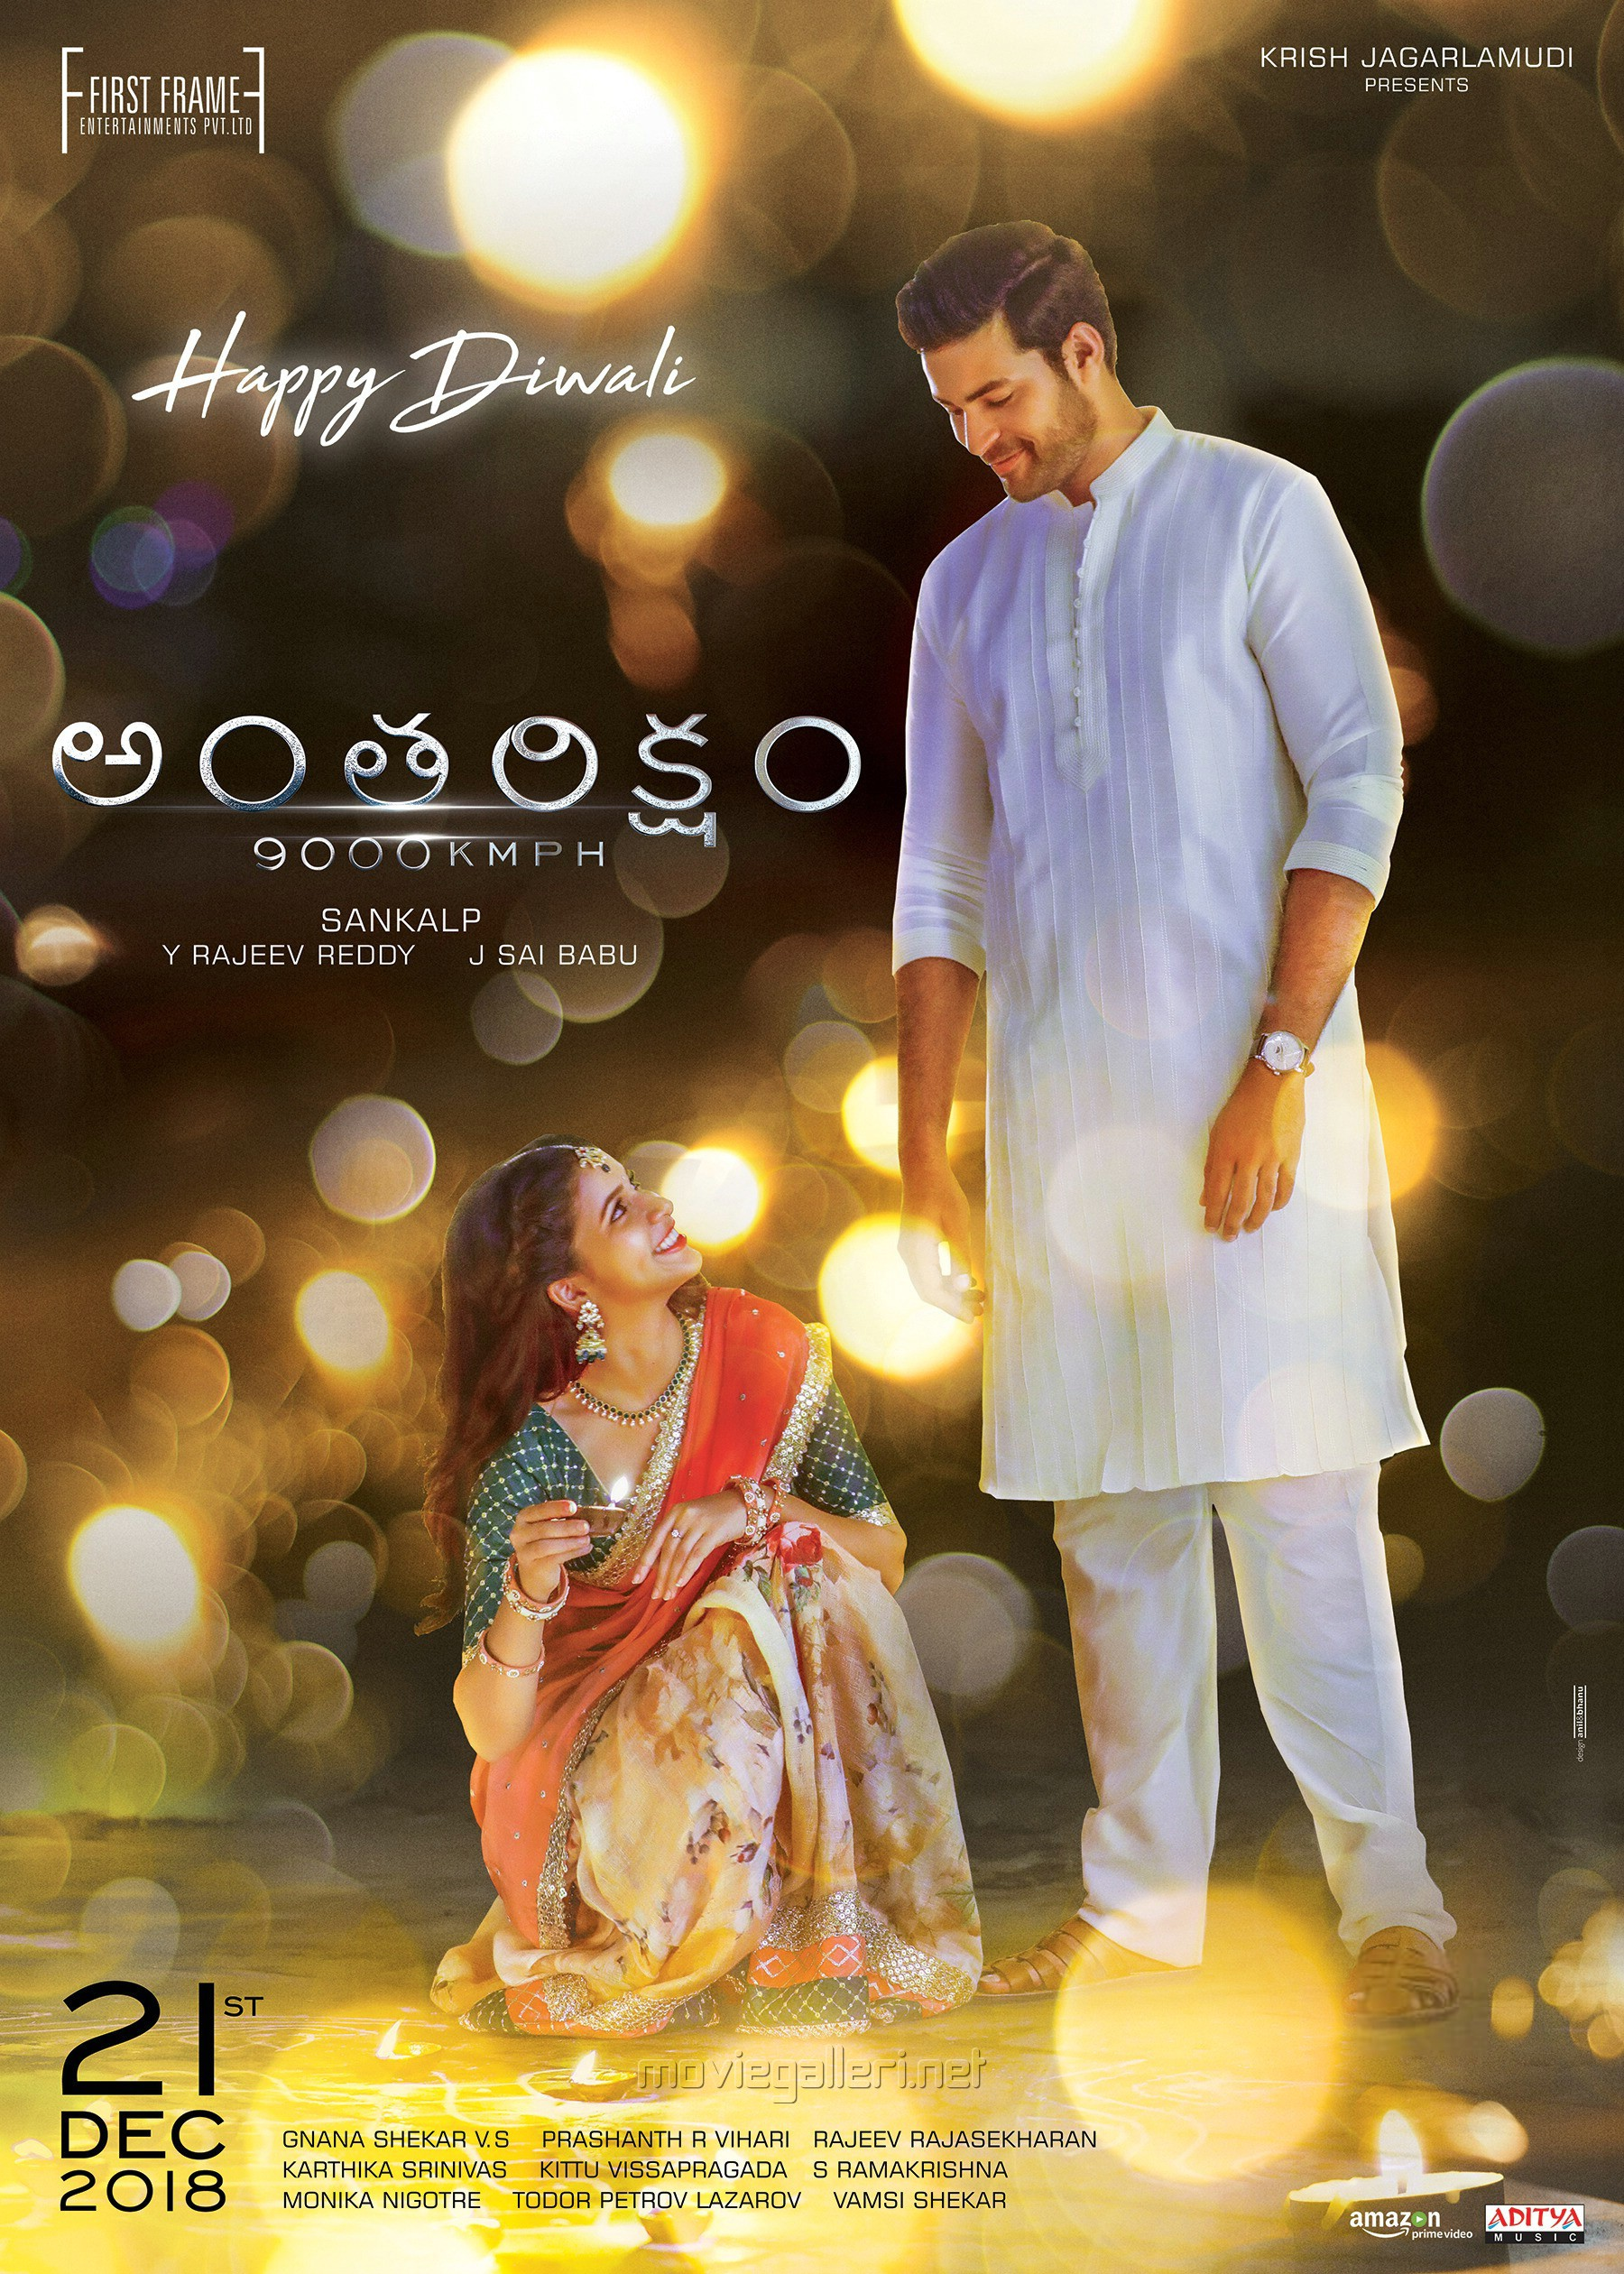 Lavanya Tripathi Varun Tej Antariksham 9000 KMPH Movie Diwali Wishes Poster HD